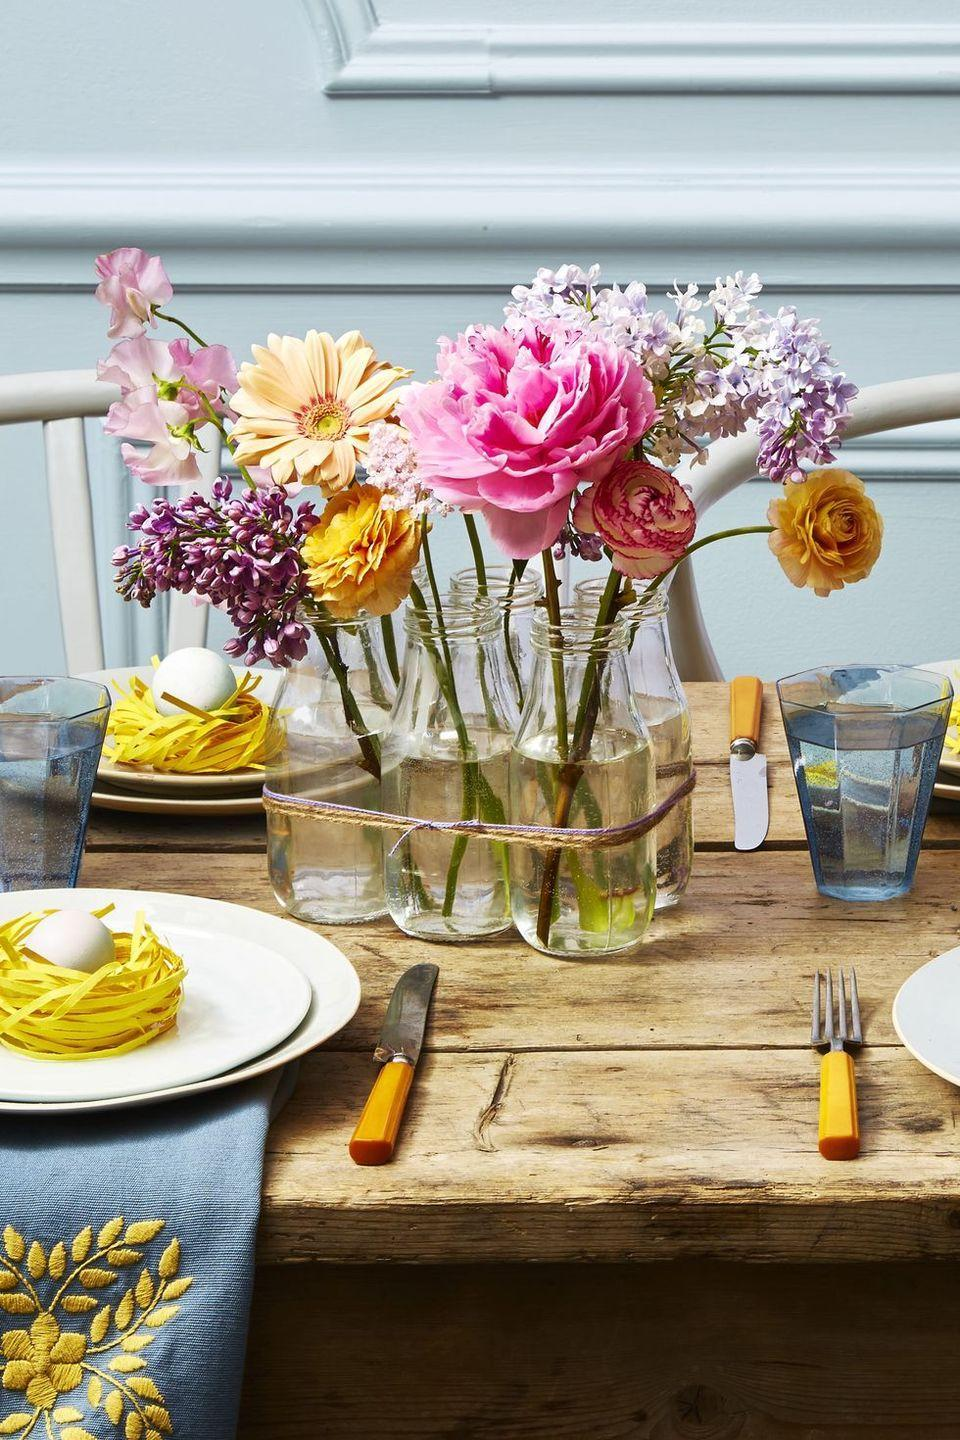 """<p>For an unexpected look, string together a bunch of empty milk jars, and fill with a mixture of small and large blooms.</p><p><a class=""""link rapid-noclick-resp"""" href=""""https://www.amazon.com/Natural-100PCS-Retangle-Crafts-Blisstime/dp/B01LZBECKU/?tag=syn-yahoo-20&ascsubtag=%5Bartid%7C10055.g.1906%5Bsrc%7Cyahoo-us"""" rel=""""nofollow noopener"""" target=""""_blank"""" data-ylk=""""slk:SHOP TWINE"""">SHOP TWINE</a></p><p><strong>RELATED:</strong> <a href=""""https://www.goodhousekeeping.com/holidays/easter-ideas/g2217/easter-decorations/"""" rel=""""nofollow noopener"""" target=""""_blank"""" data-ylk=""""slk:Easter Decorations You Can Easily DIY"""" class=""""link rapid-noclick-resp"""">Easter Decorations You Can Easily DIY </a></p>"""